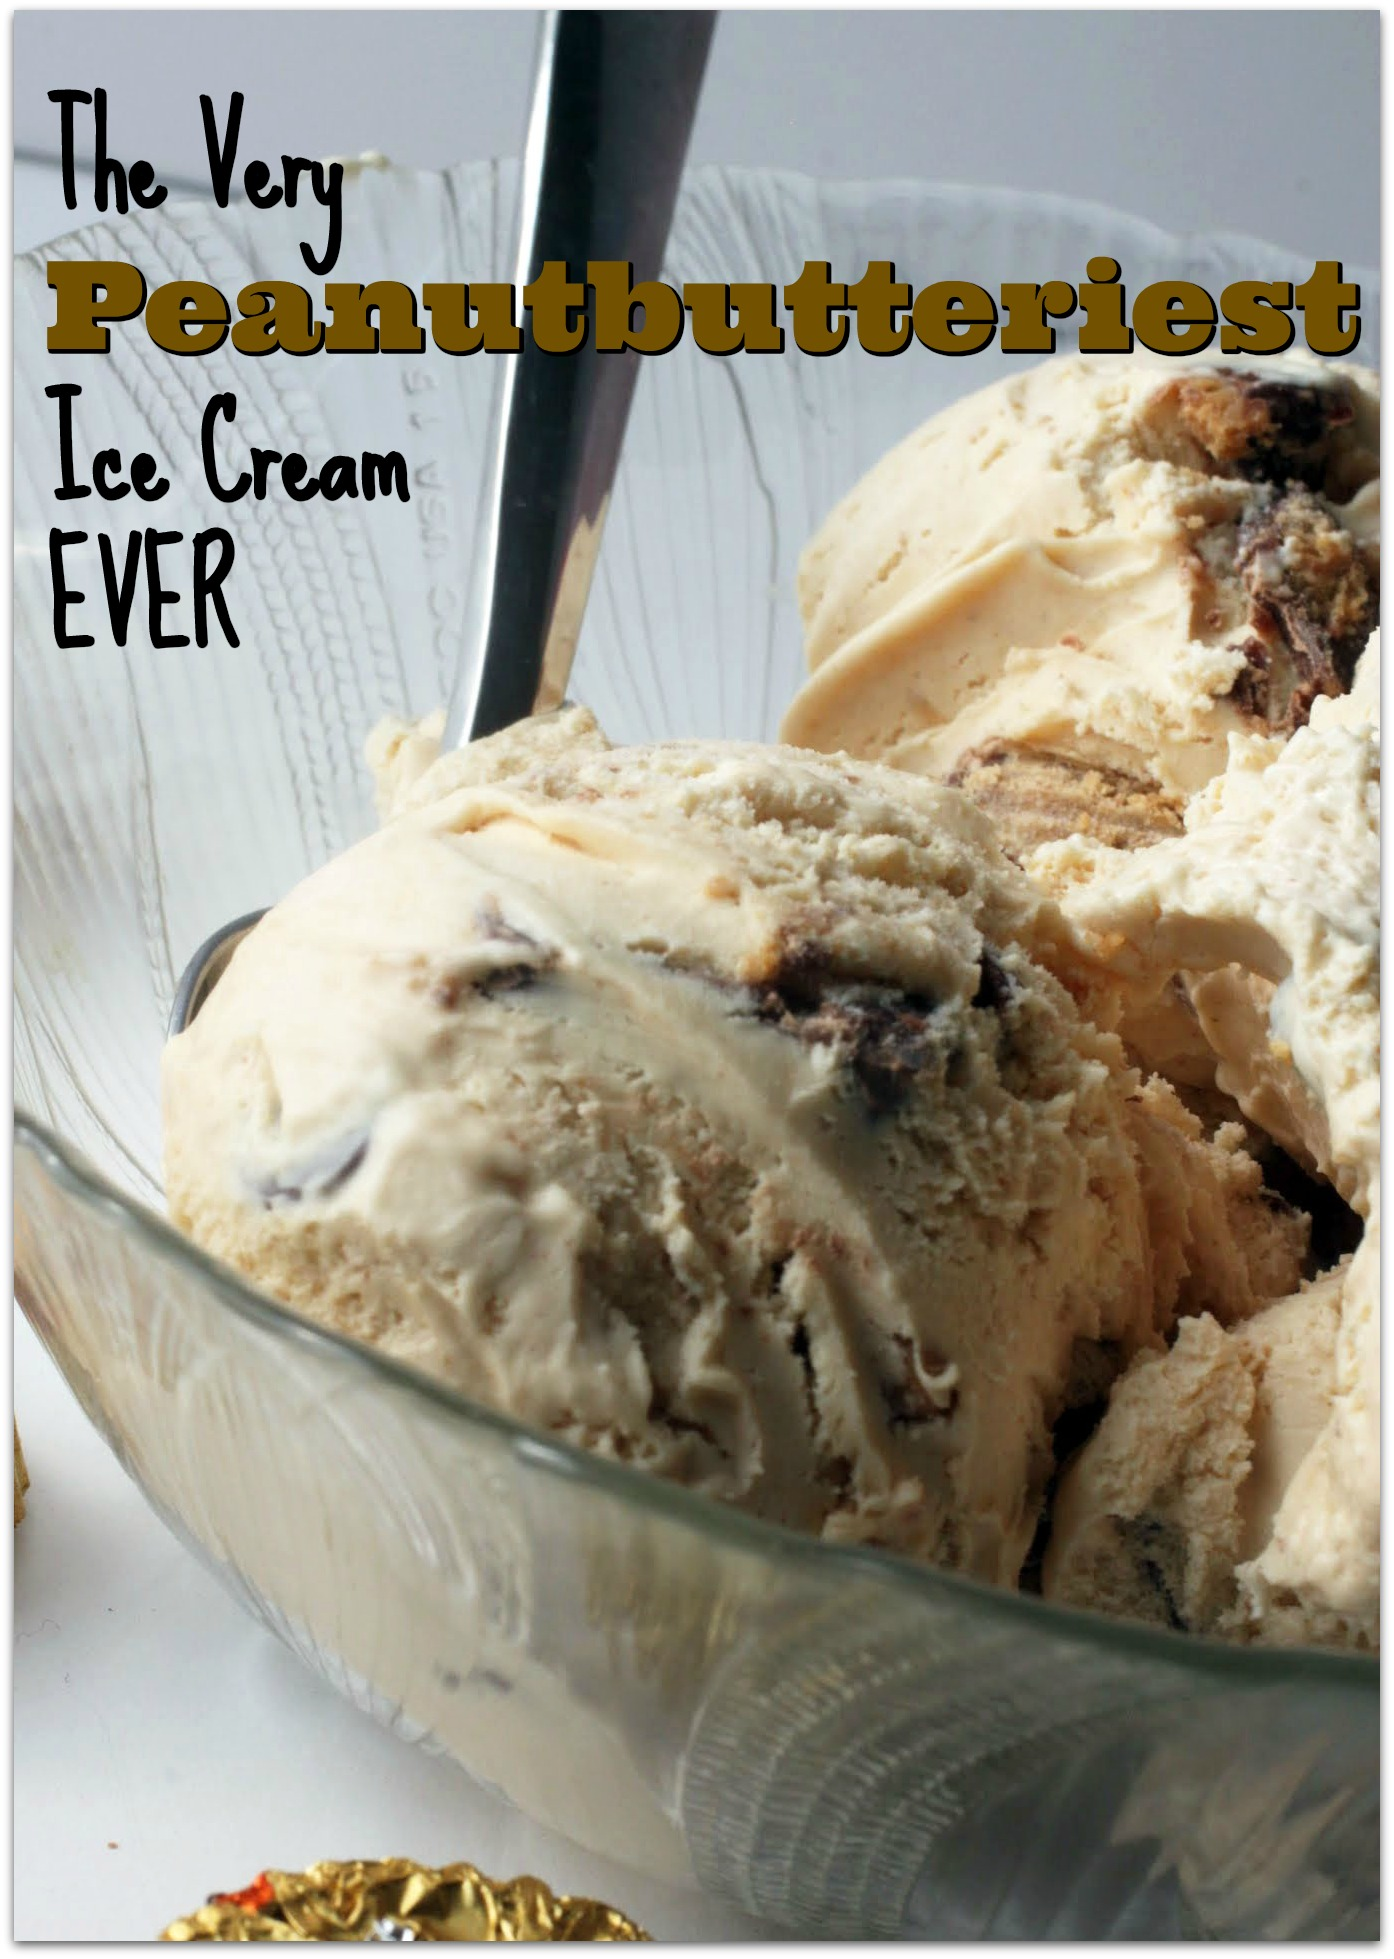 The Very Peanutbutteriest Ice Cream Ever!